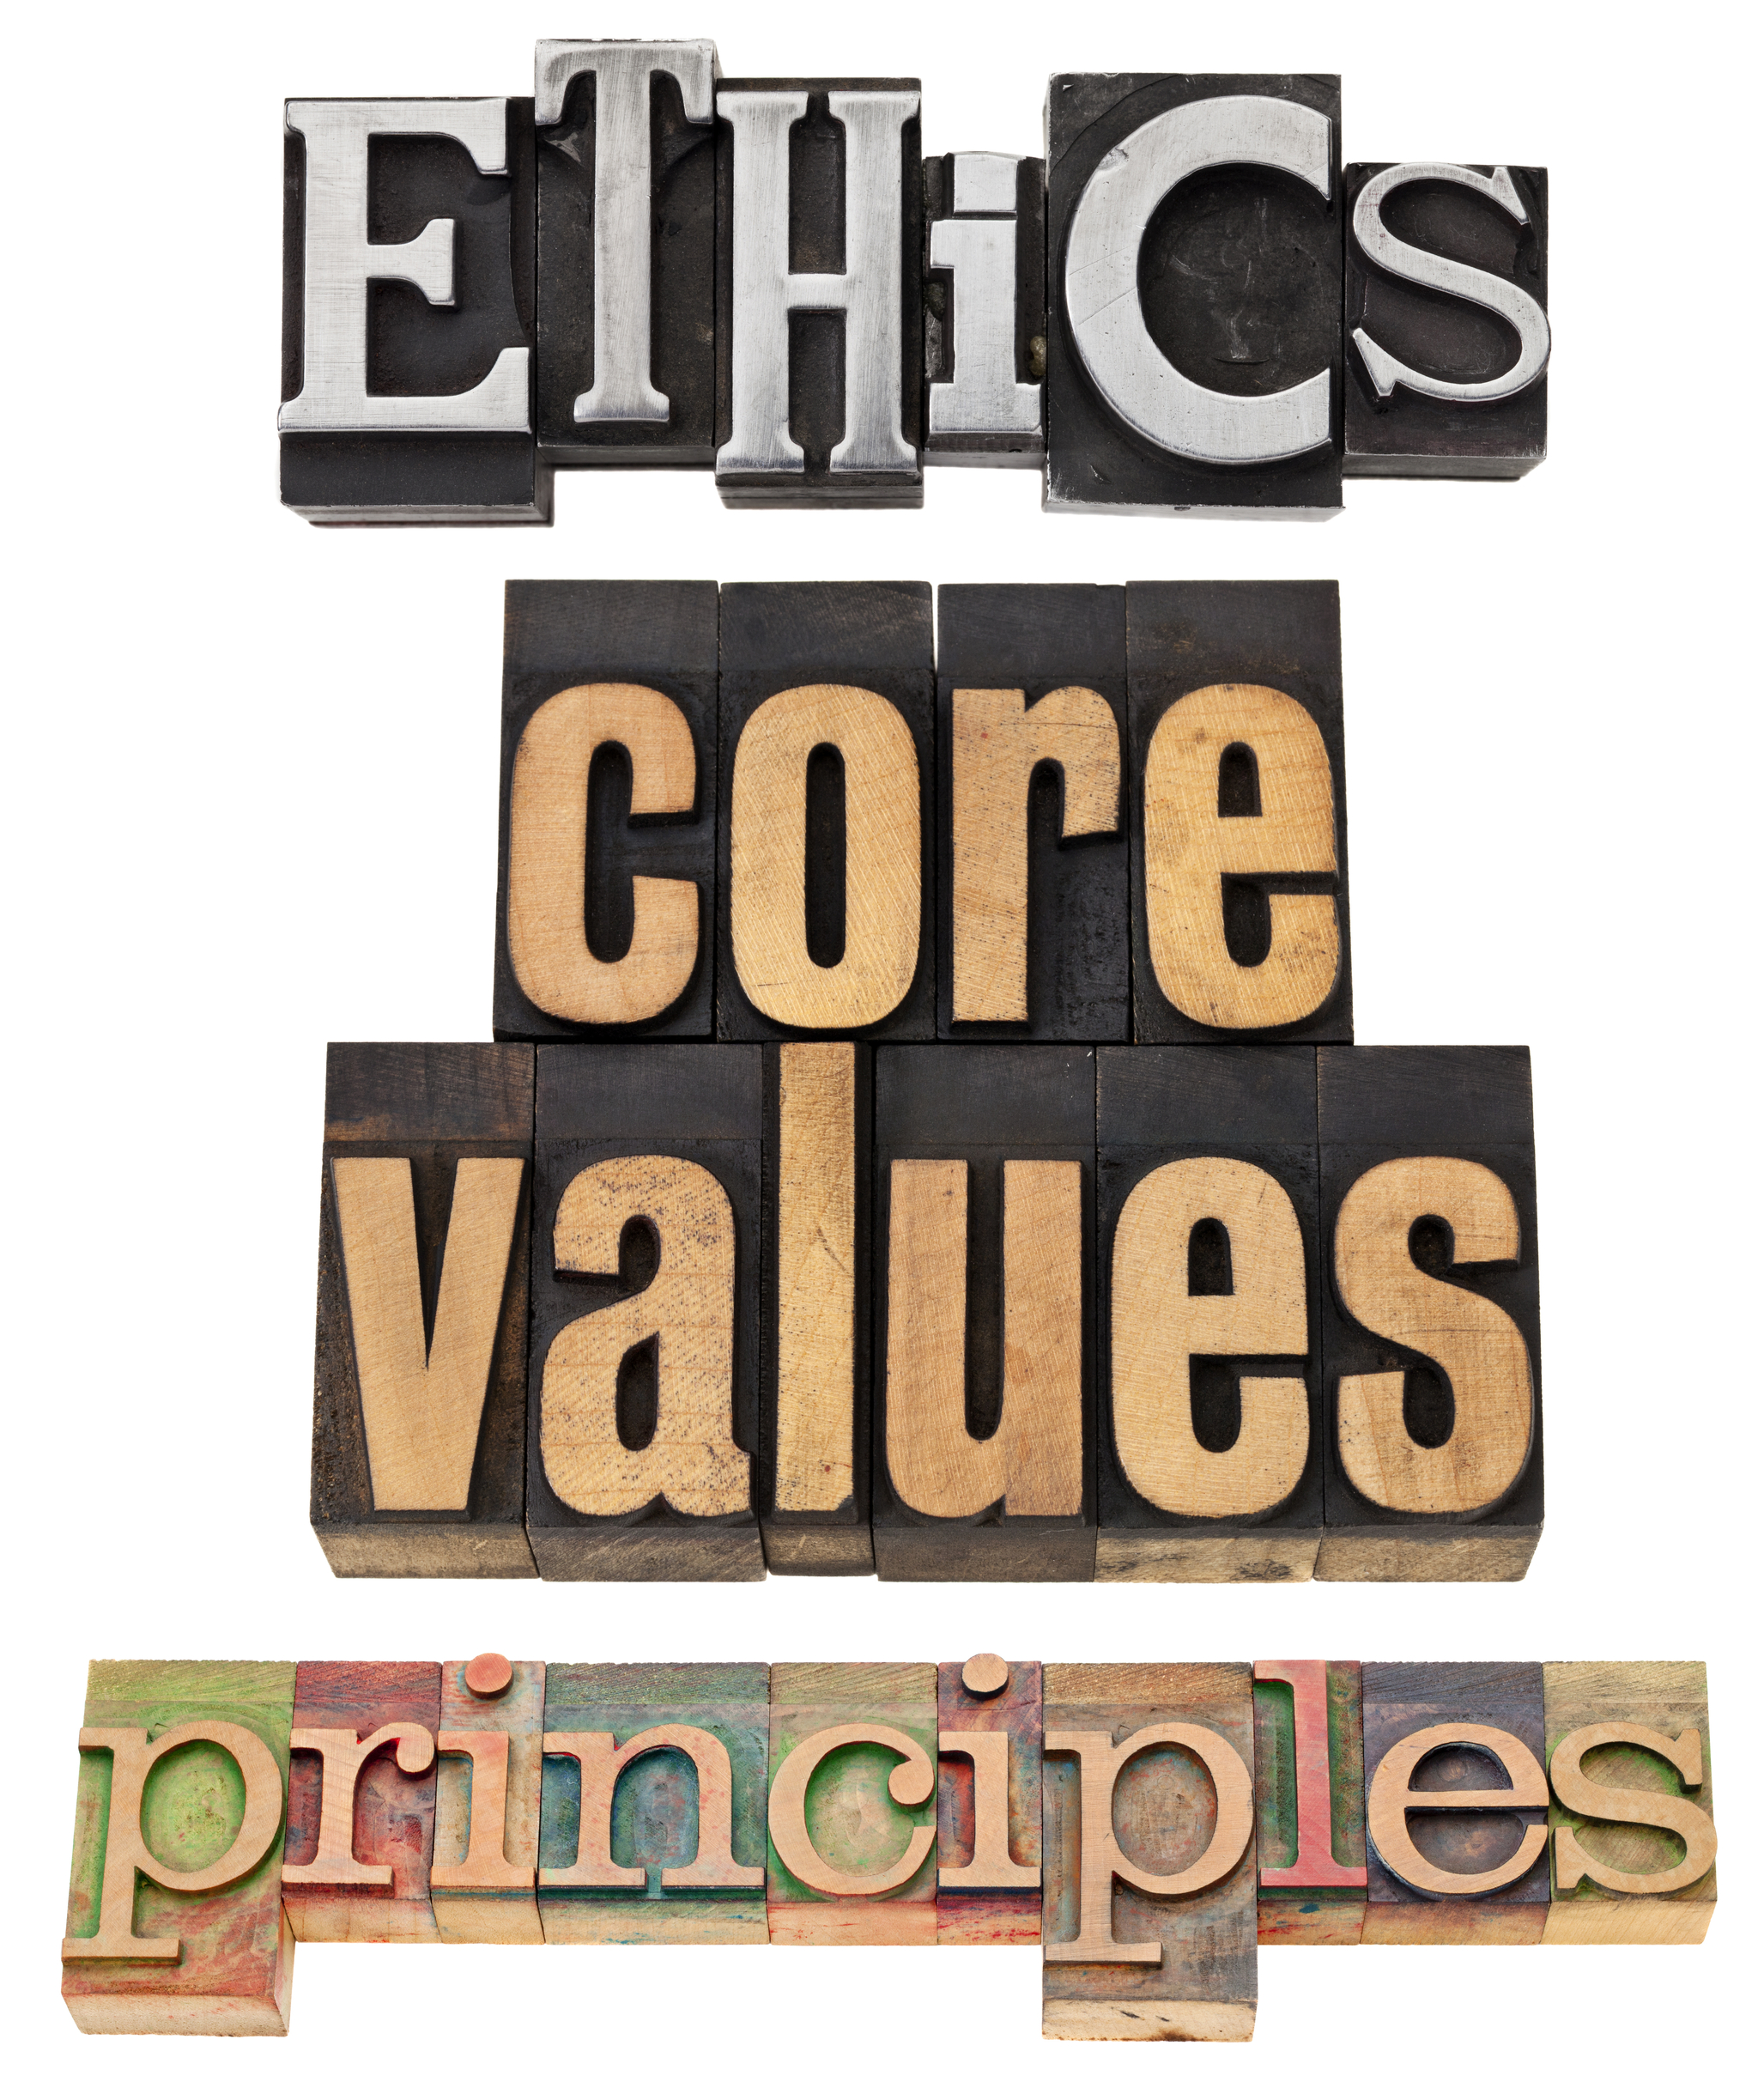 Ethical issues in physical therapy.